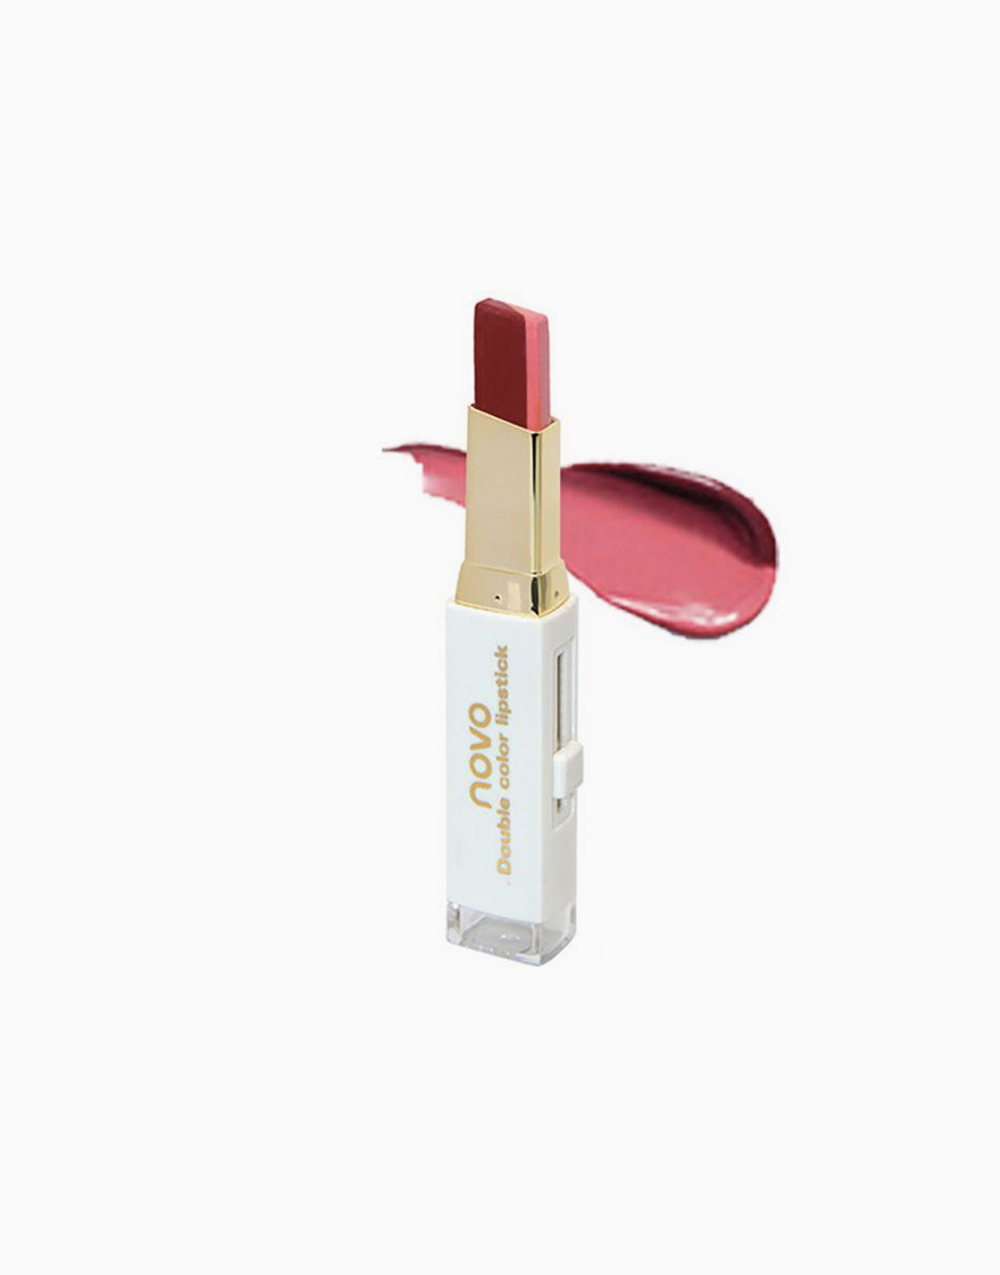 Two Tone Lip Bar by Novo Cosmetics | #8 Deep Red / Pink